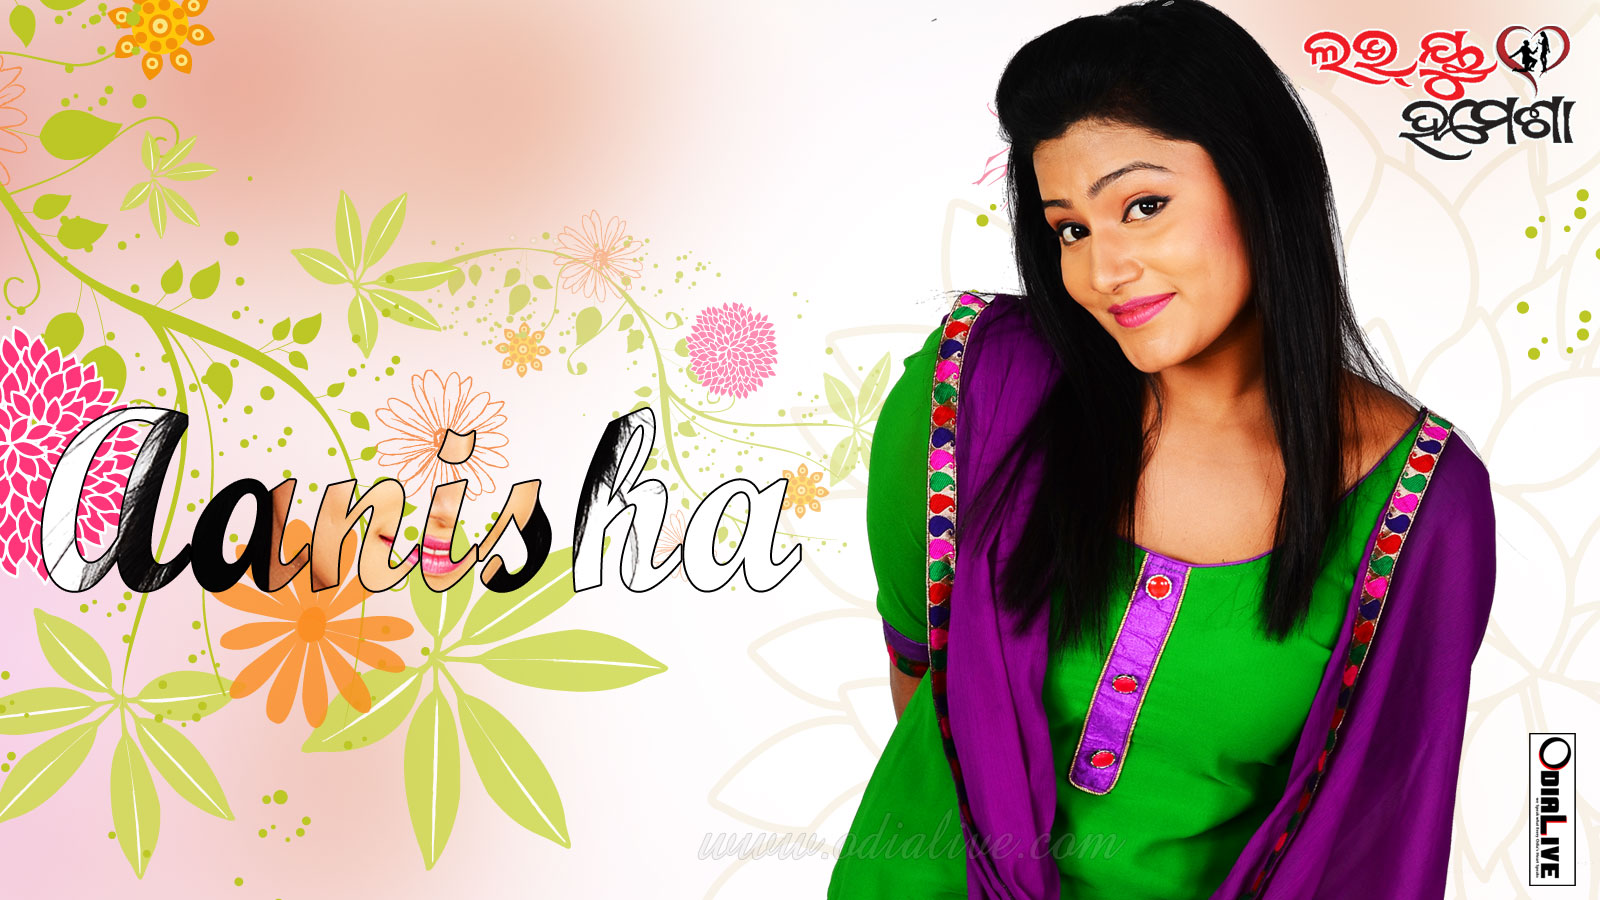 anisha-odia-actress-wallpapers - odialive (6)